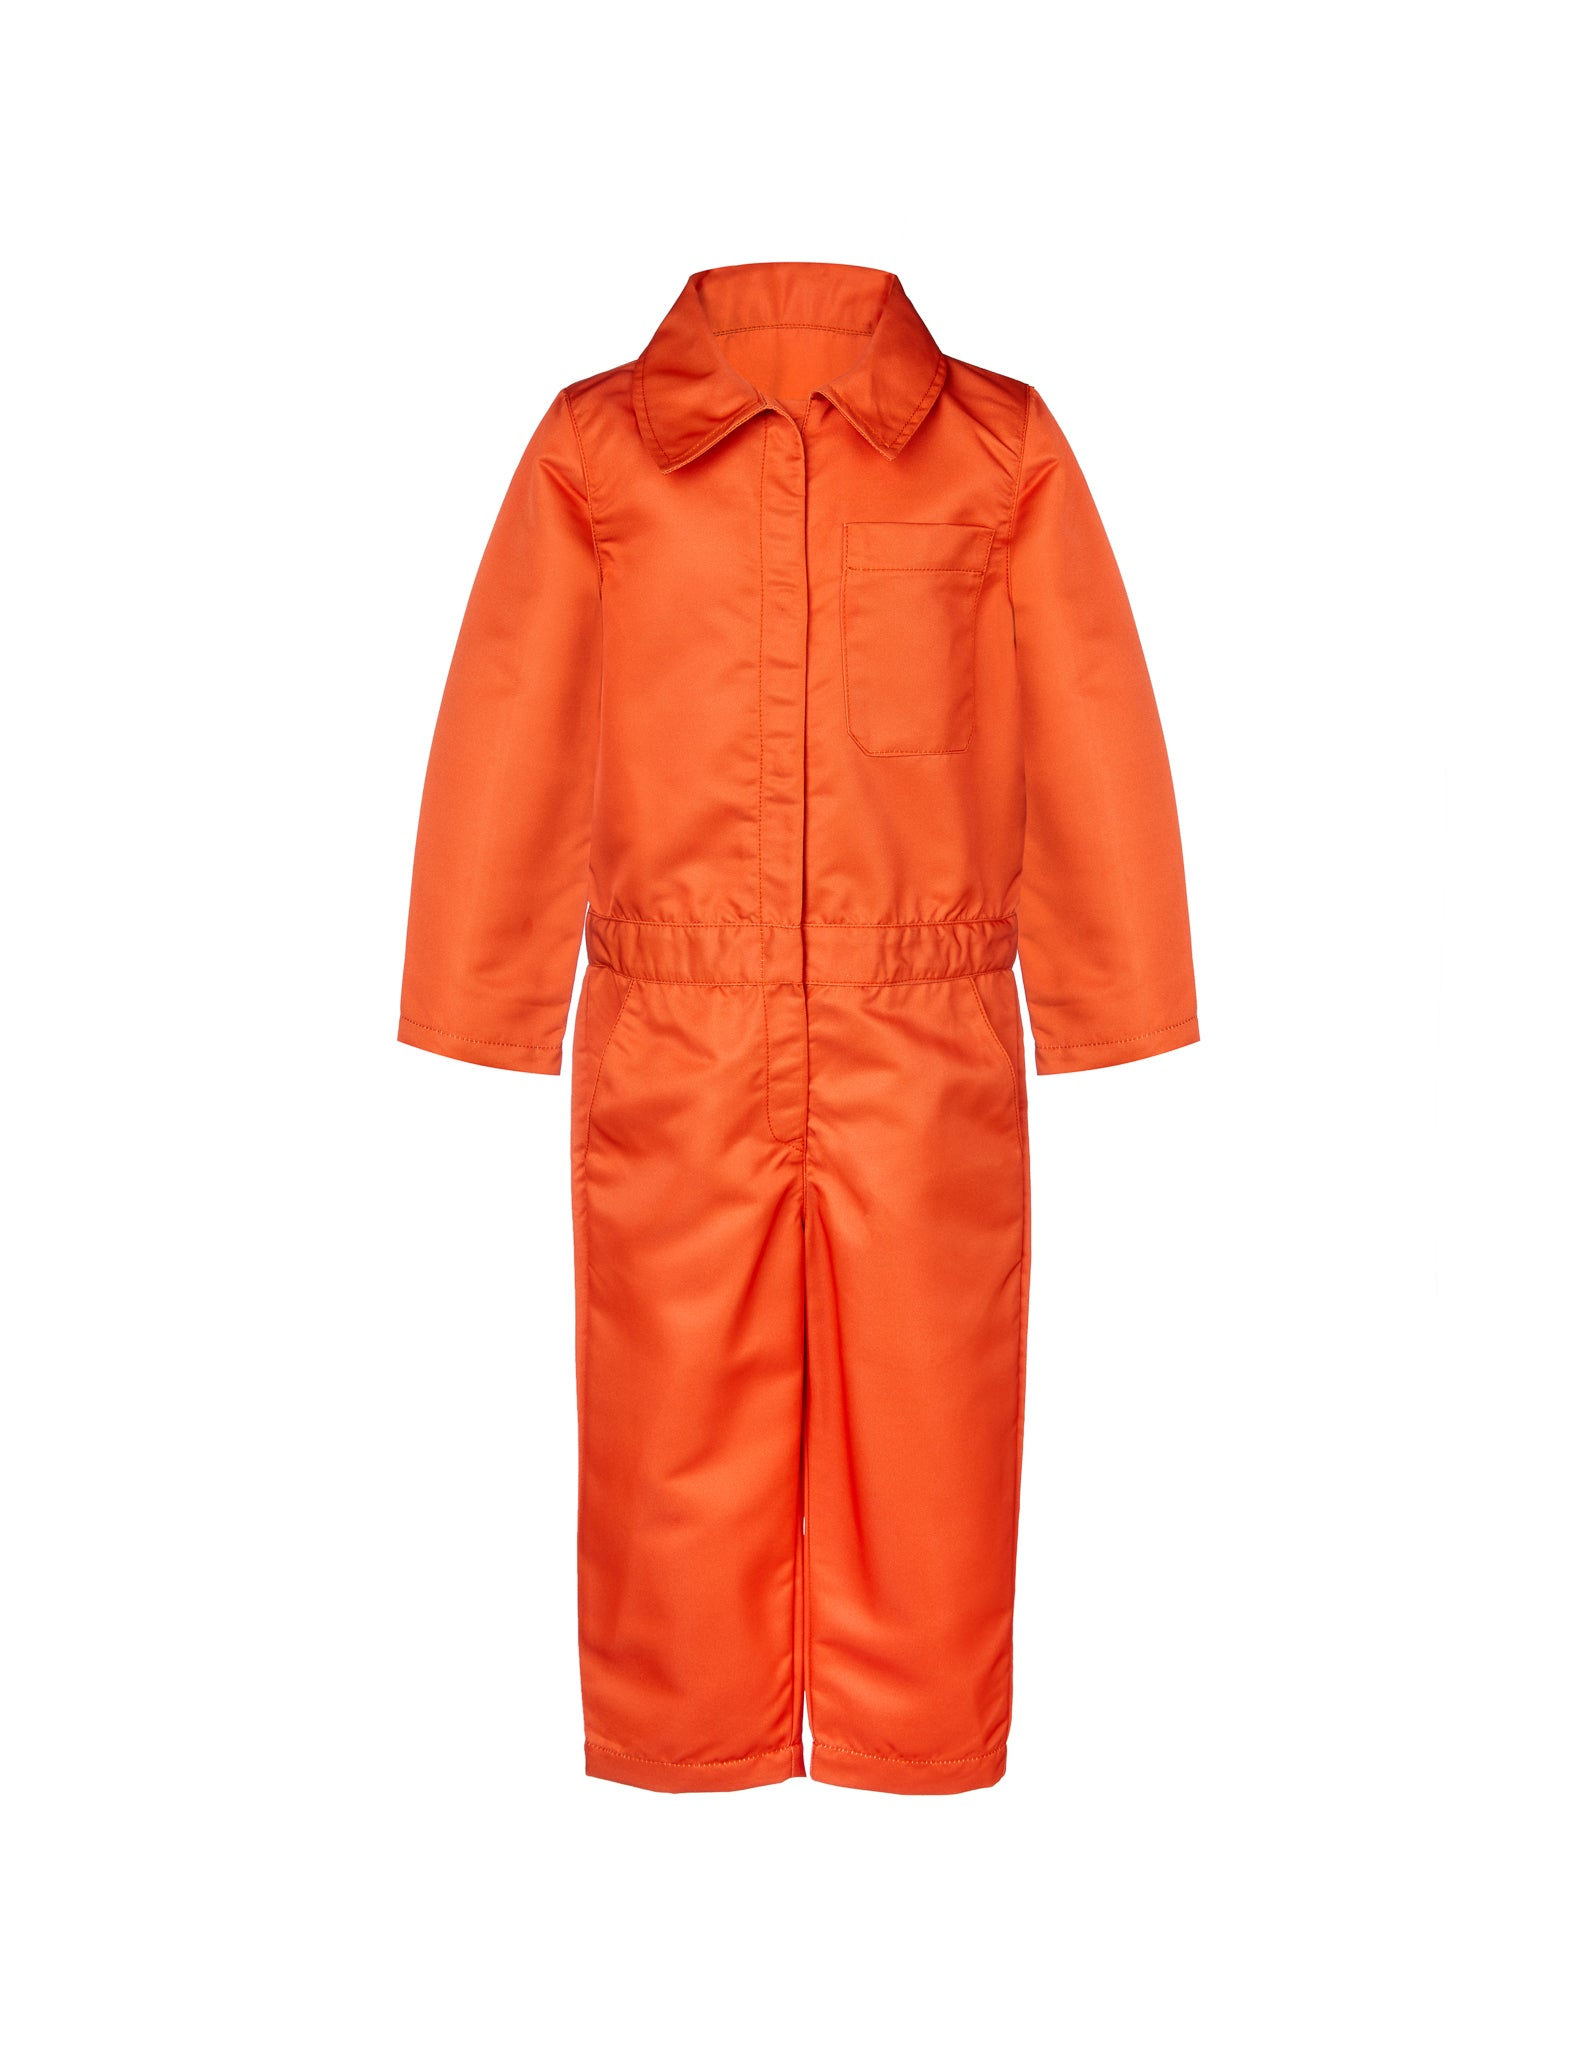 WORKWEAR JUMPSUIT IN ORANGE